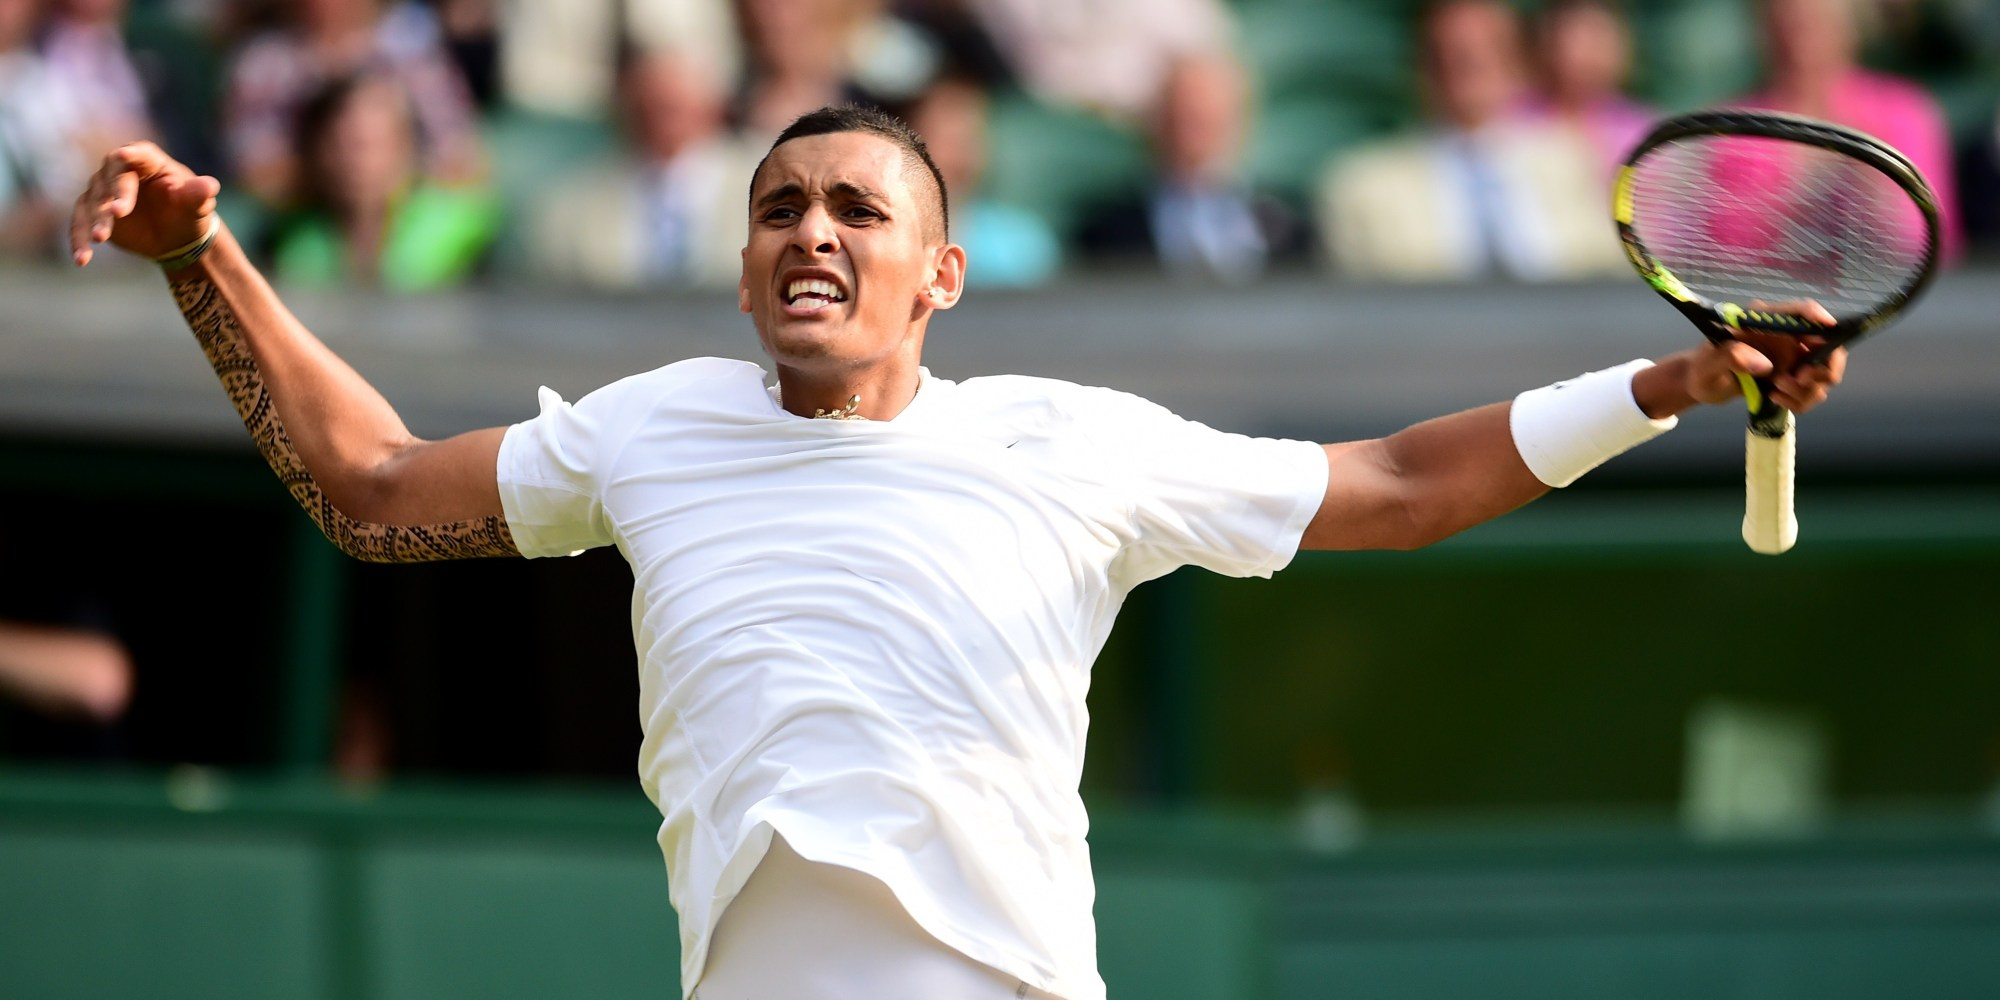 Nick Kyrgios Wallpapers and Background Images   stmednet 2000x1000